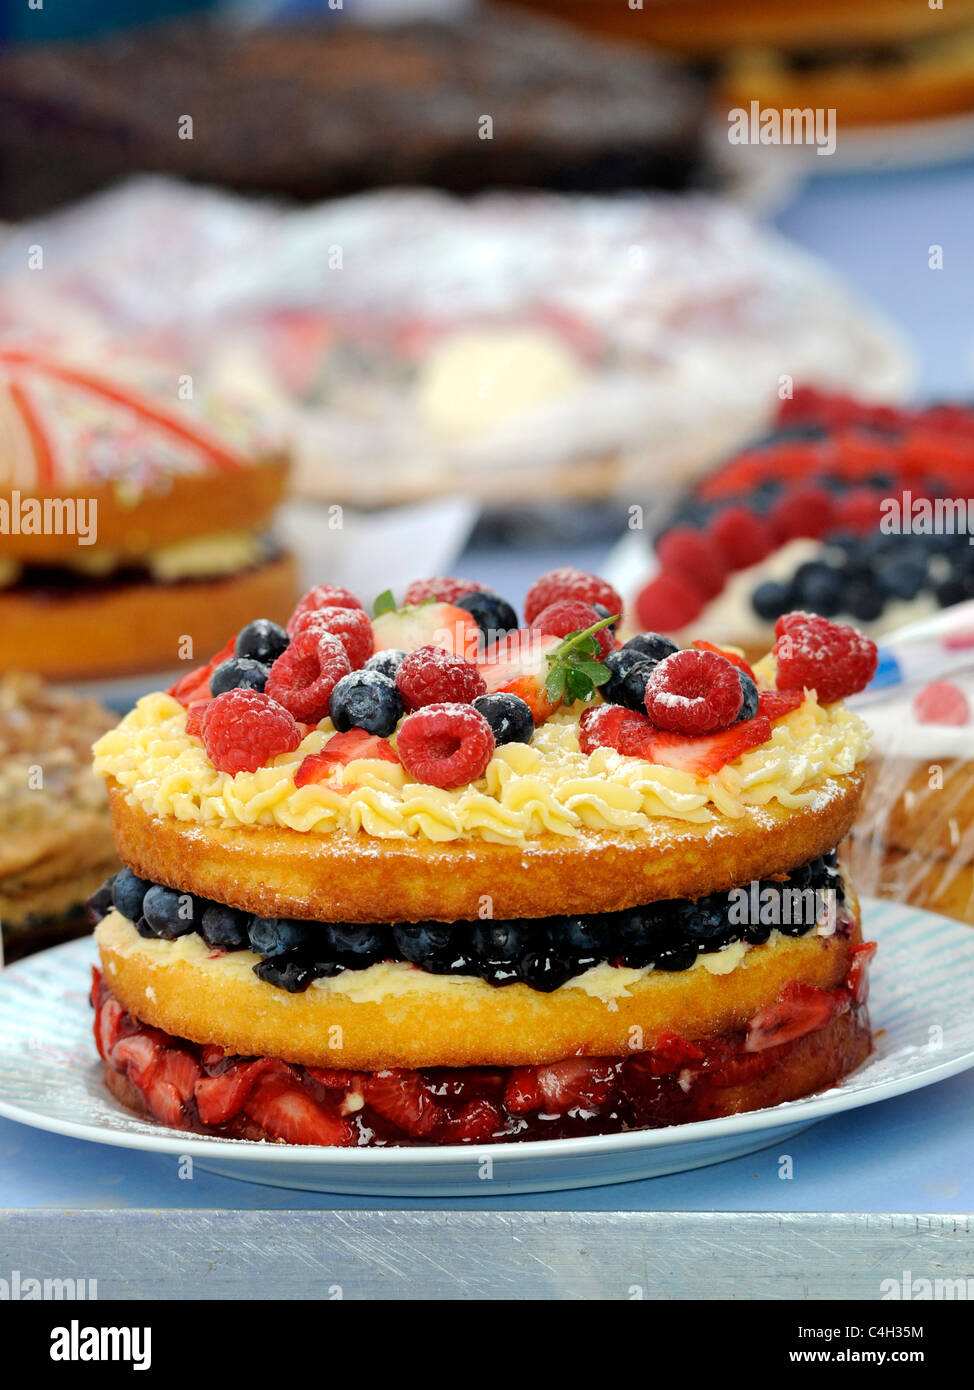 A large fruit cake at an old fashioned tea party. - Stock Image